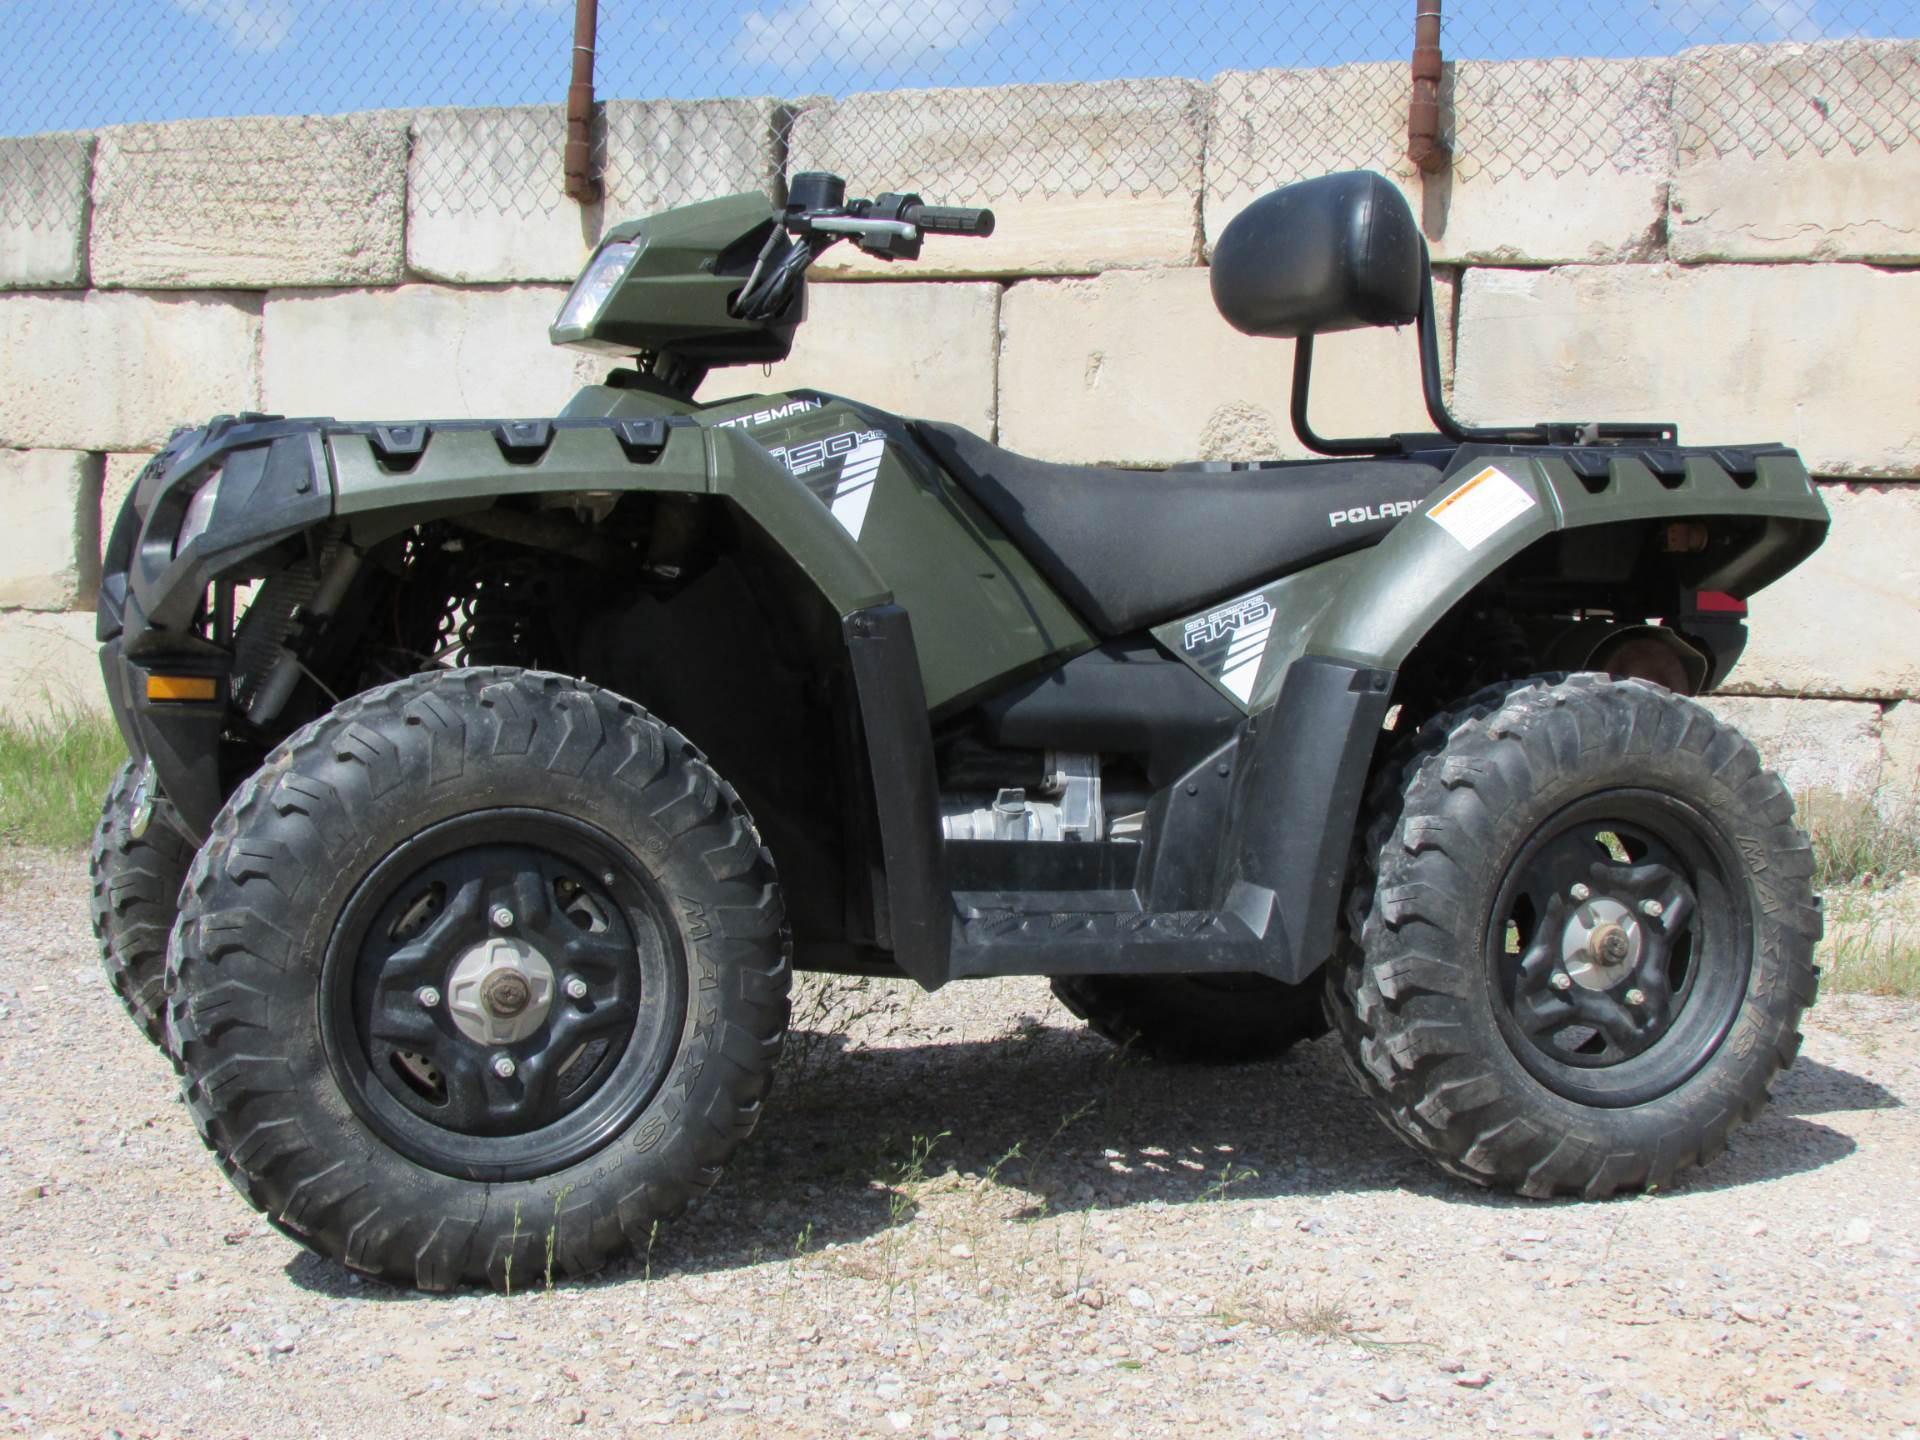 2015 Polaris Sportsman® 850 in Wichita Falls, Texas - Photo 7